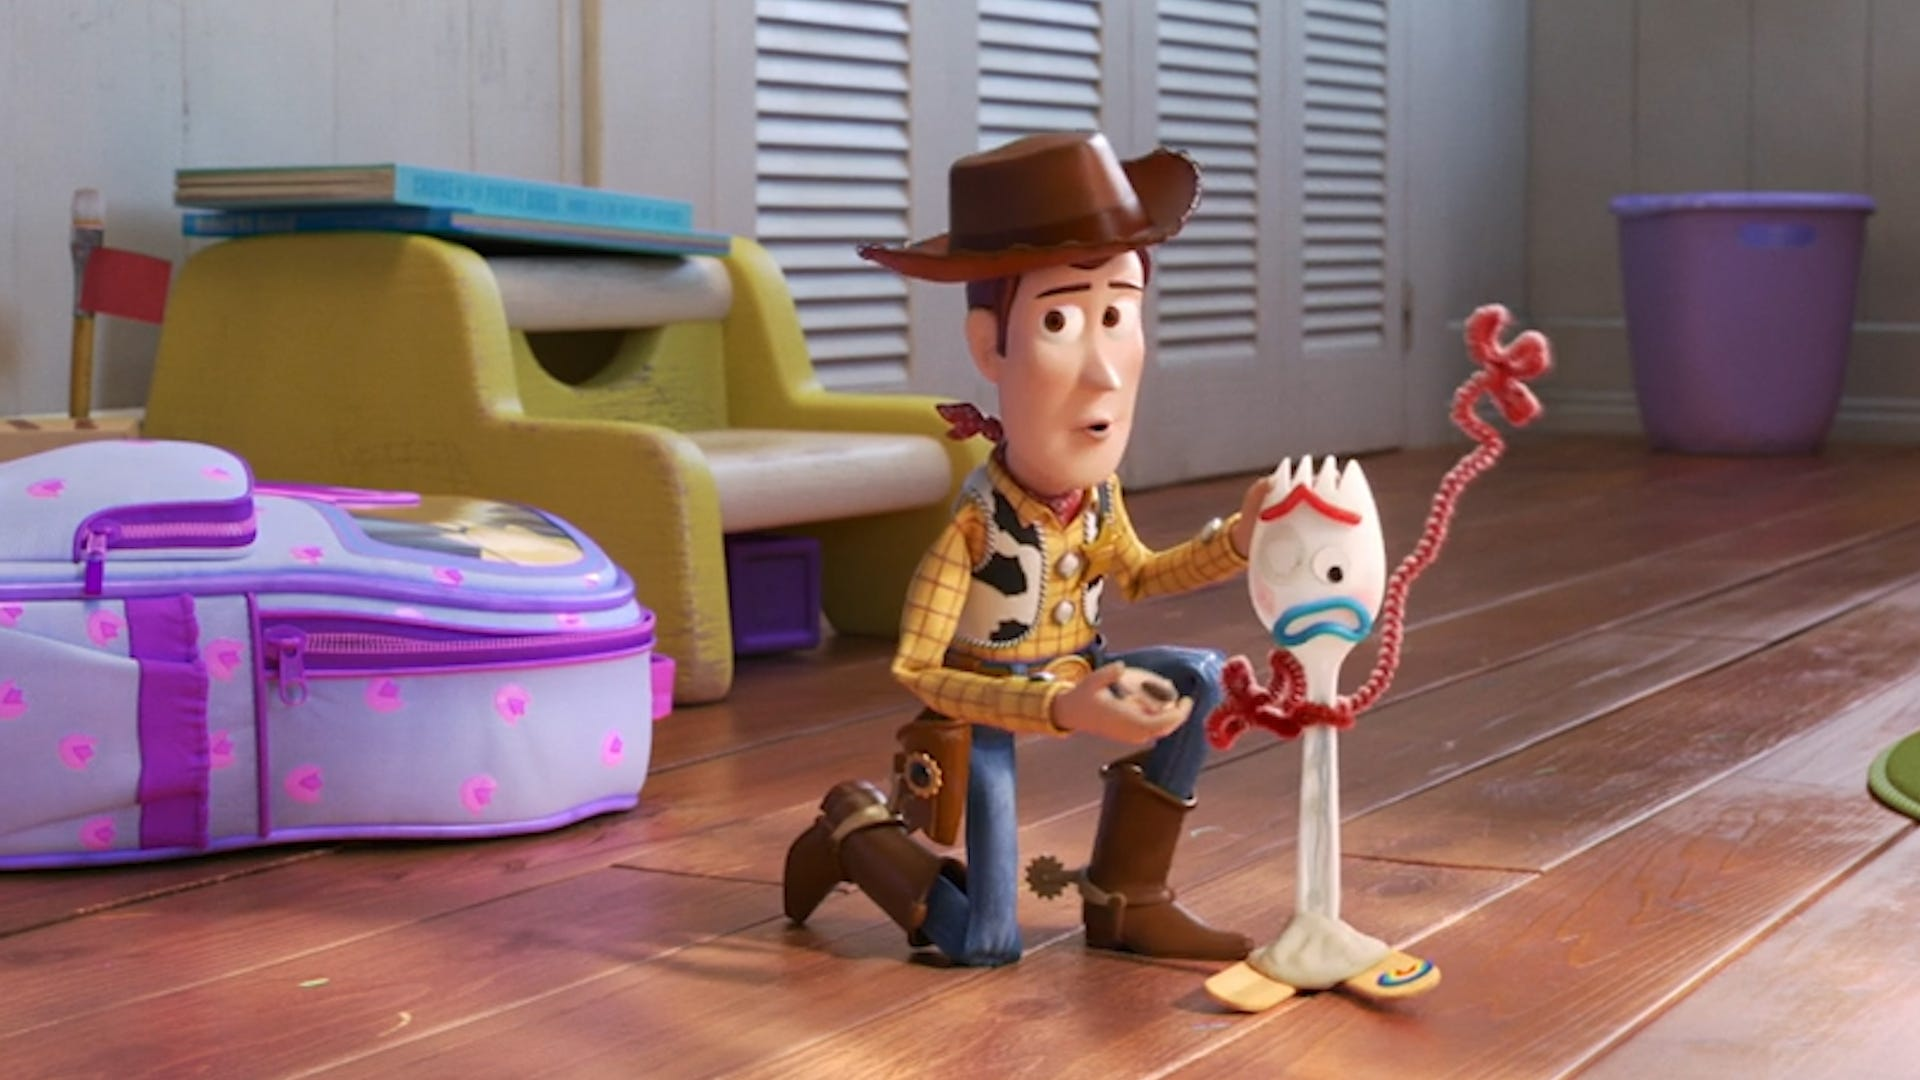 'Toy Story 4' introduces new friend and creepy dolls